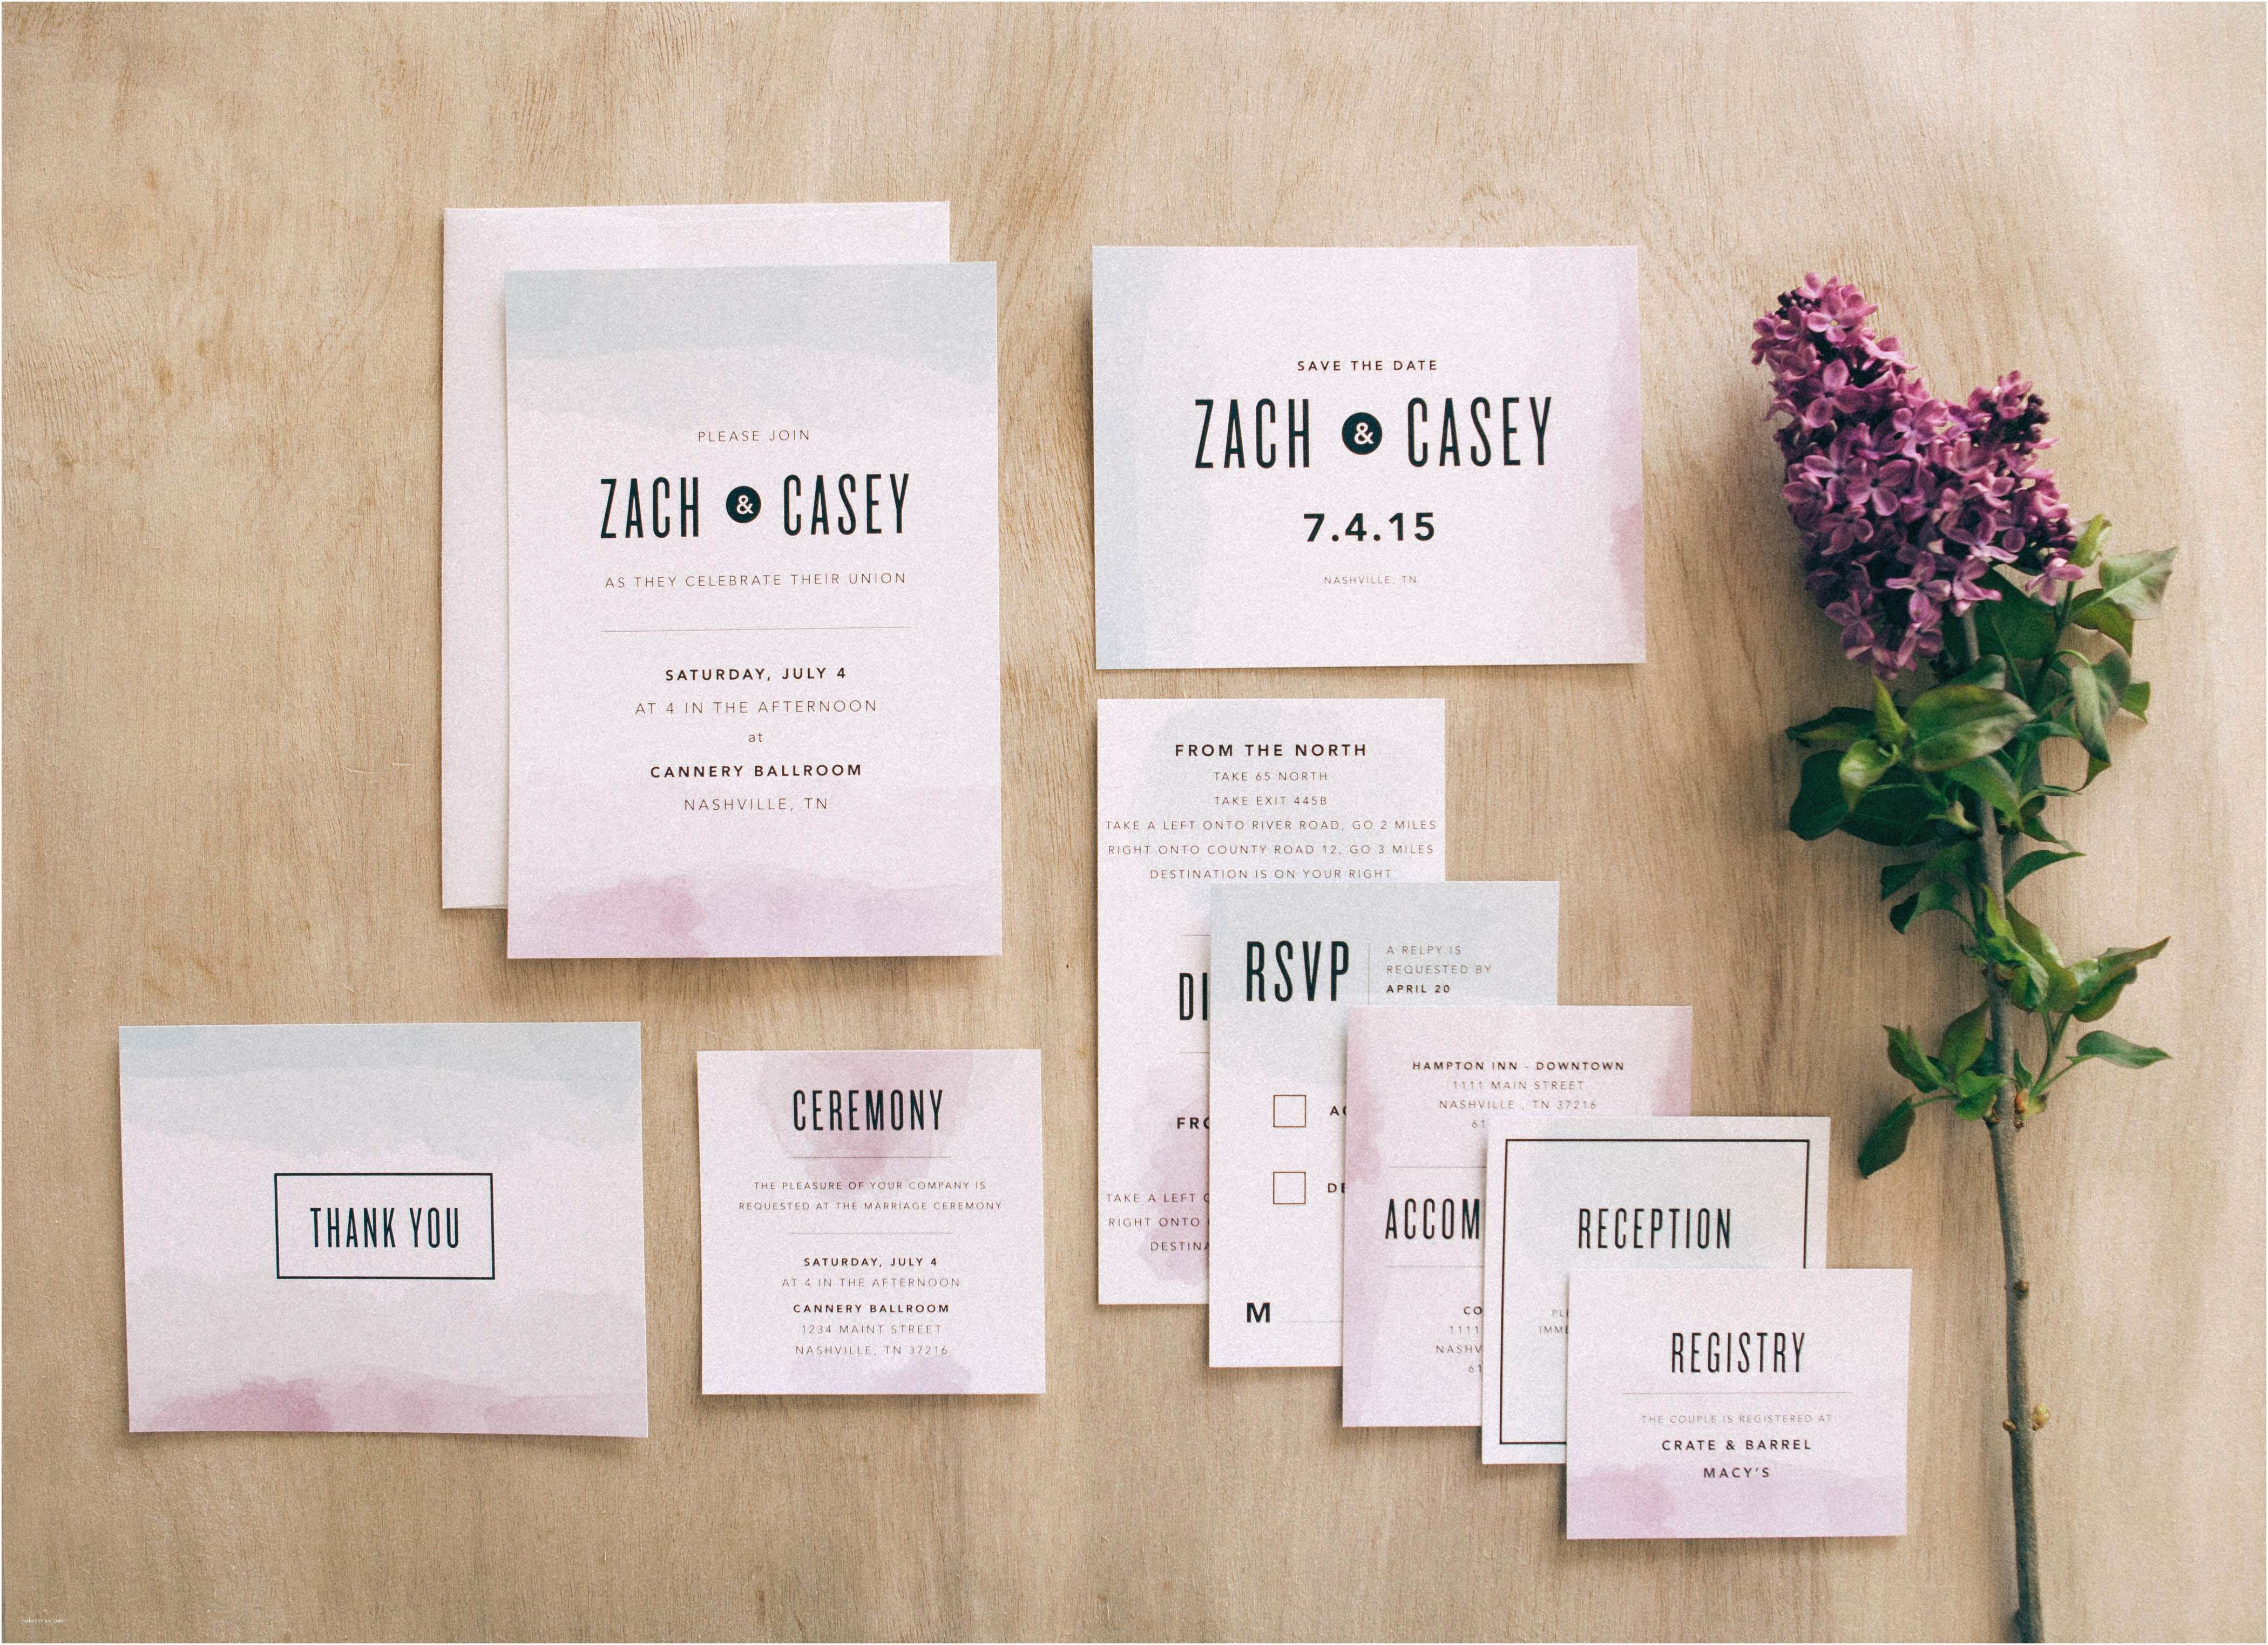 Basic Wedding Invitations New Collection From Basic Invite